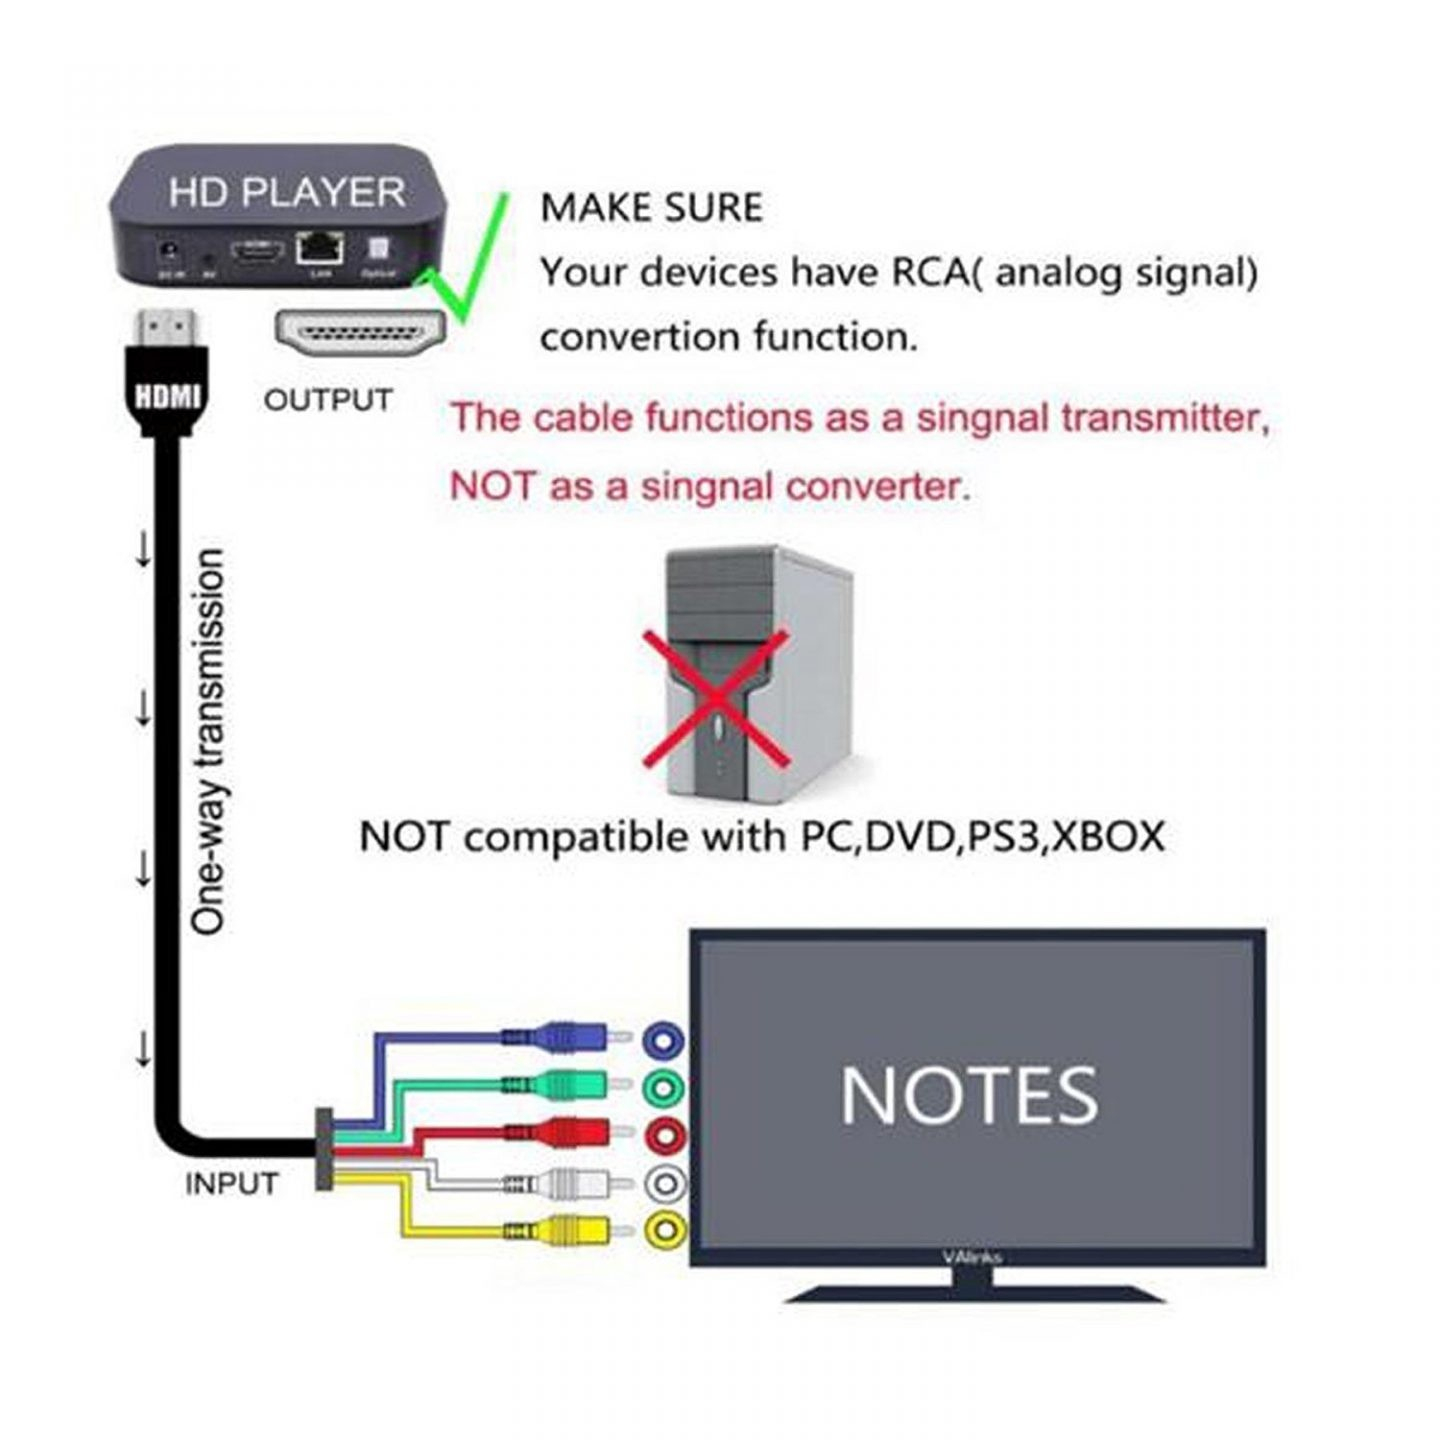 Fascinating Micro Usb Wire Diagram Gallery Binvm Iphone Cord Wiring - Micro Usb Wall Charger Wiring Diagram